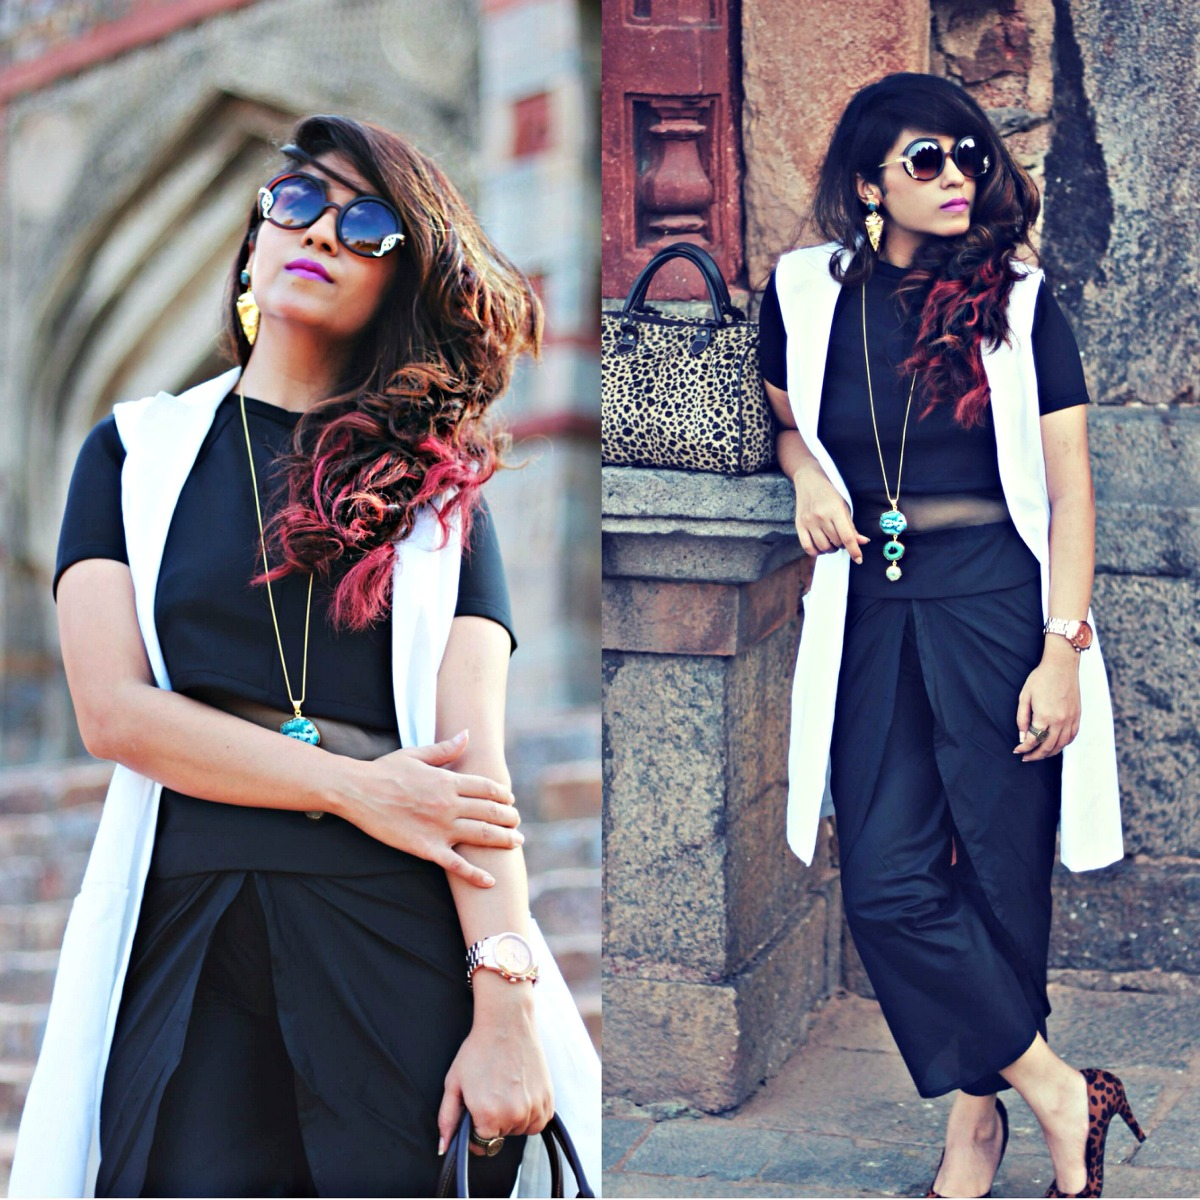 ootd monochromes black and white winter wear, elle streetstyle fashion